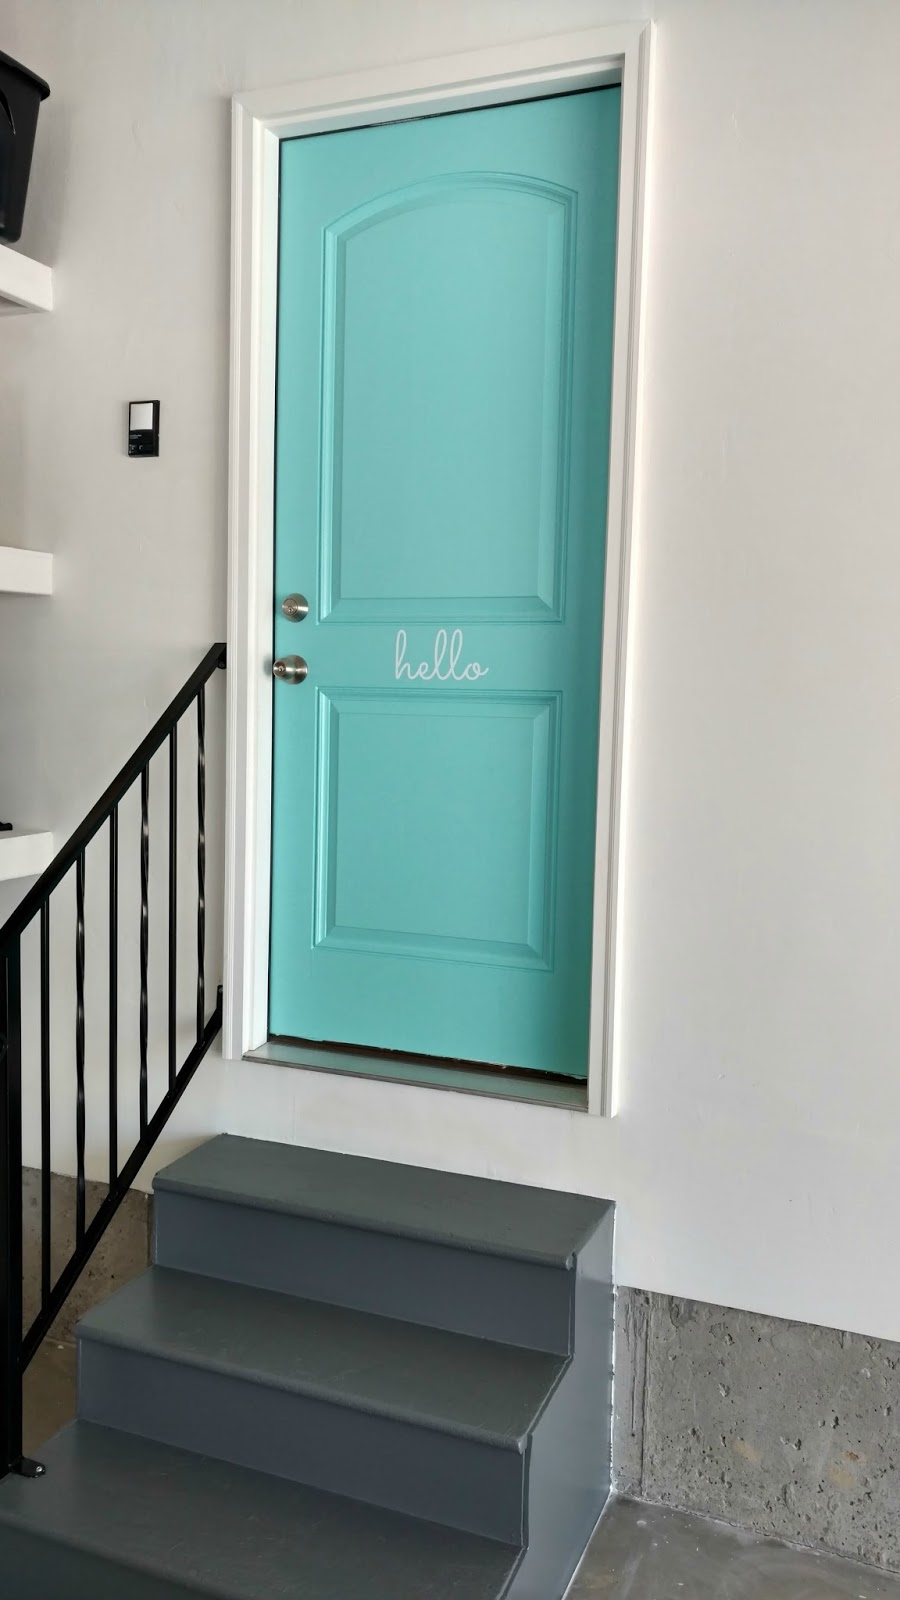 Doors To Garage: How To Update Your Garage Door Entrance